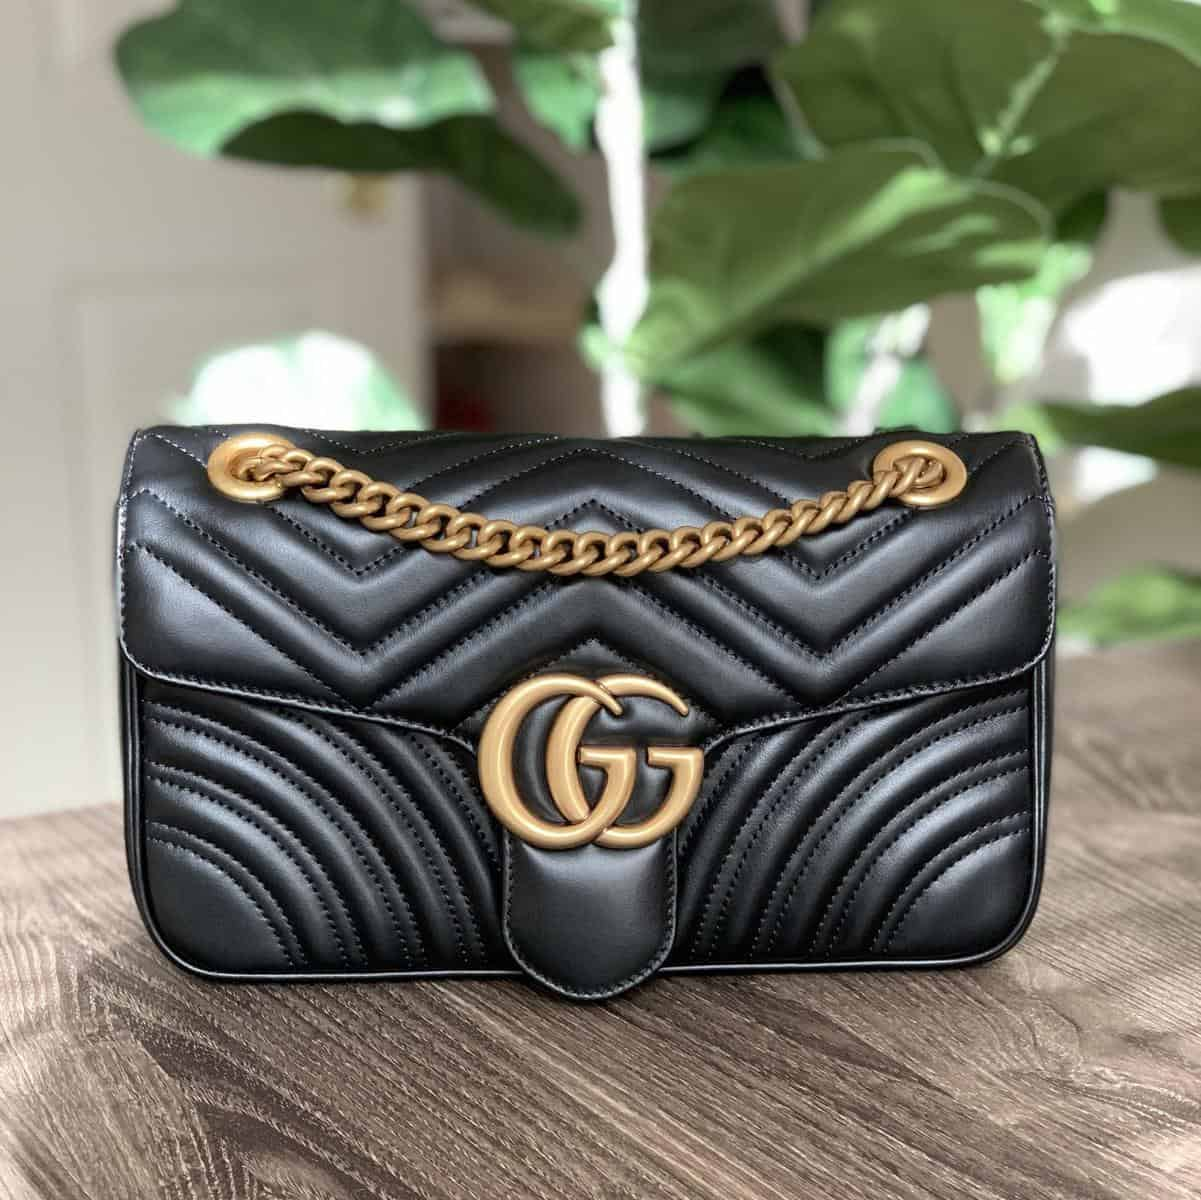 dupe vs authentic gucci gg bag